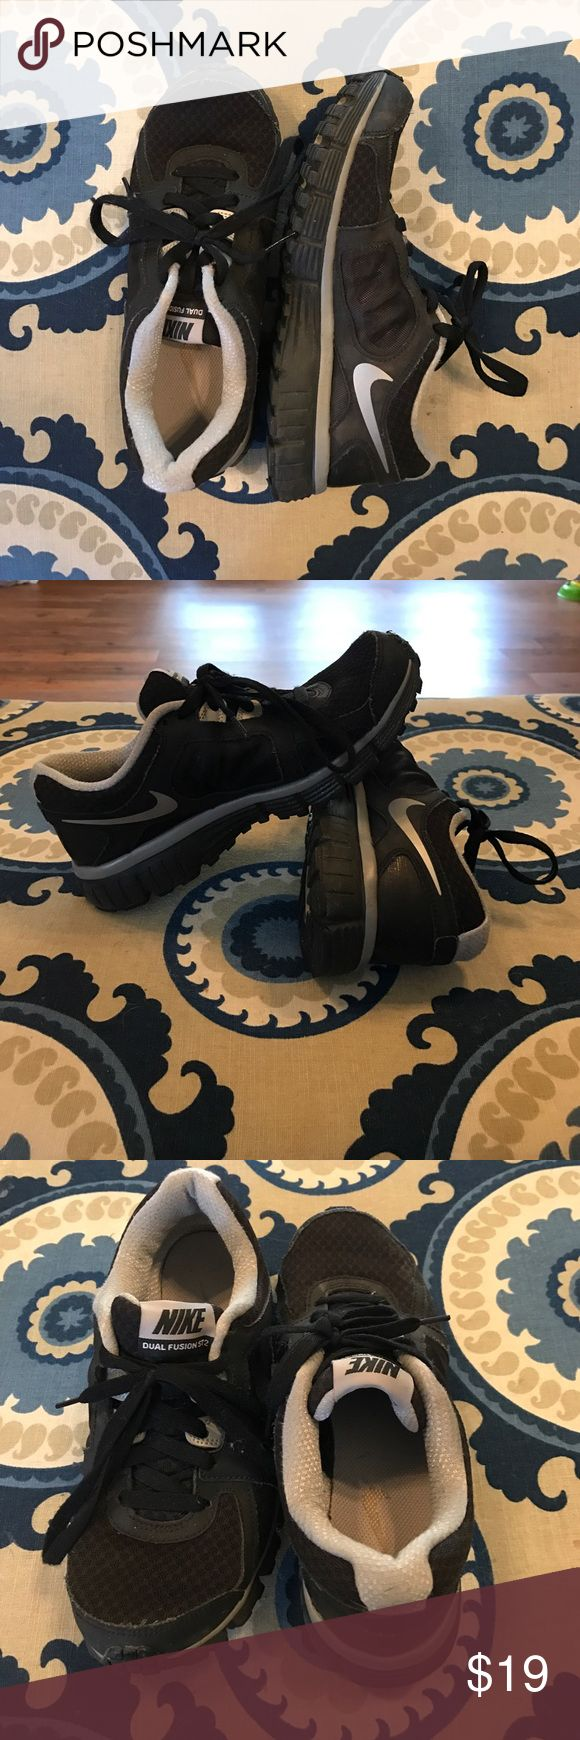 Nike dual fusion st2 Black nikes that are very comfortable, have been worn but still in great condition. Too small for me after having a baby. Open to offers! Nike Shoes Athletic Shoes